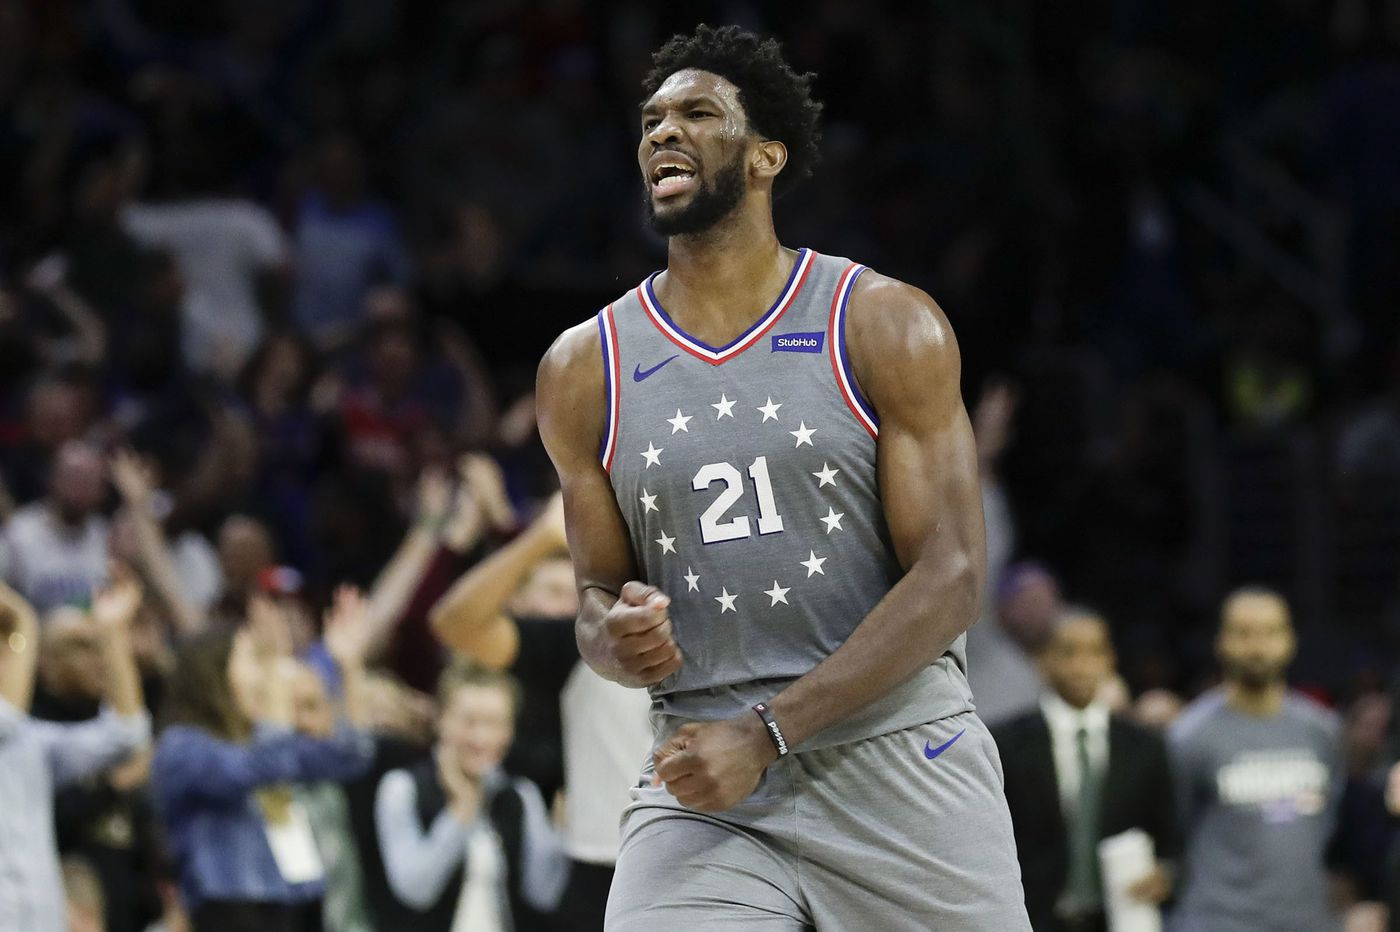 Joel Embiid leads Sixers over Hornets in overtime with 42 points